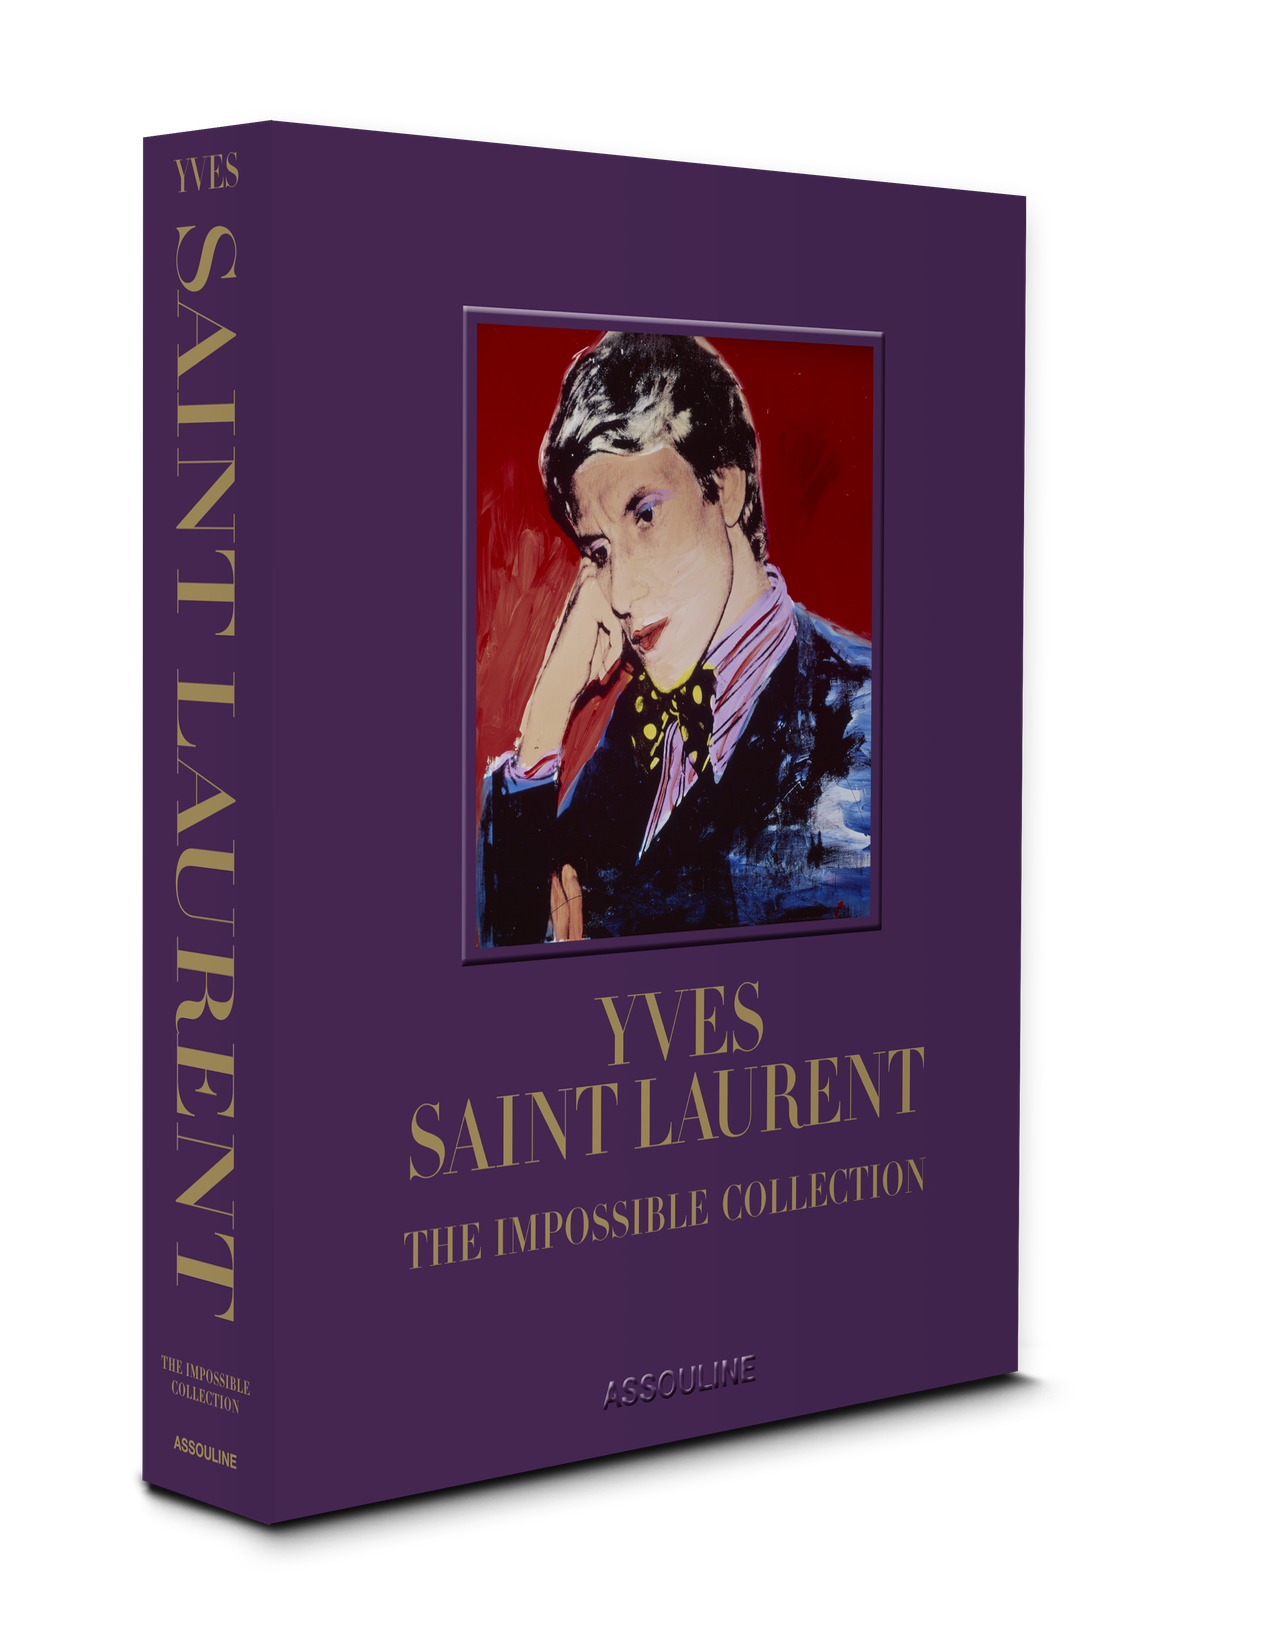 ysl 3d cover rendering.png